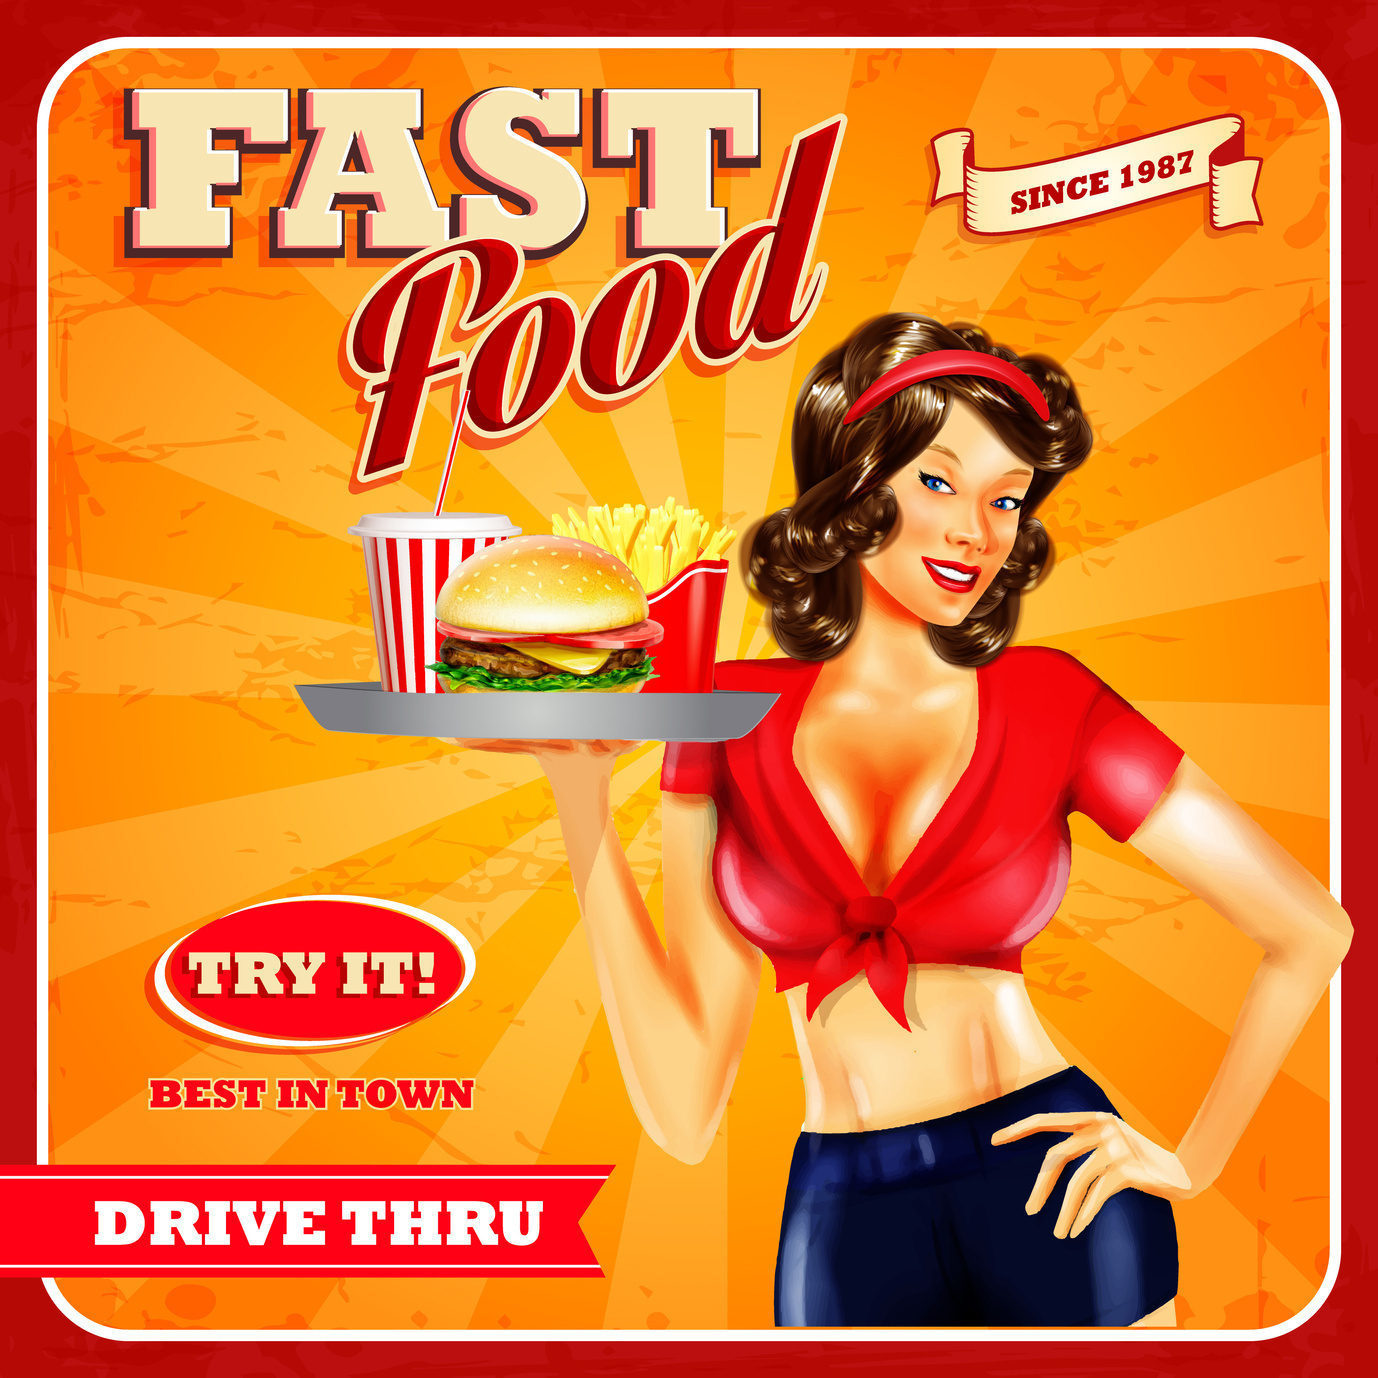 I am writing a persuasive speech on why people shouldn't eat fast food, I need help?